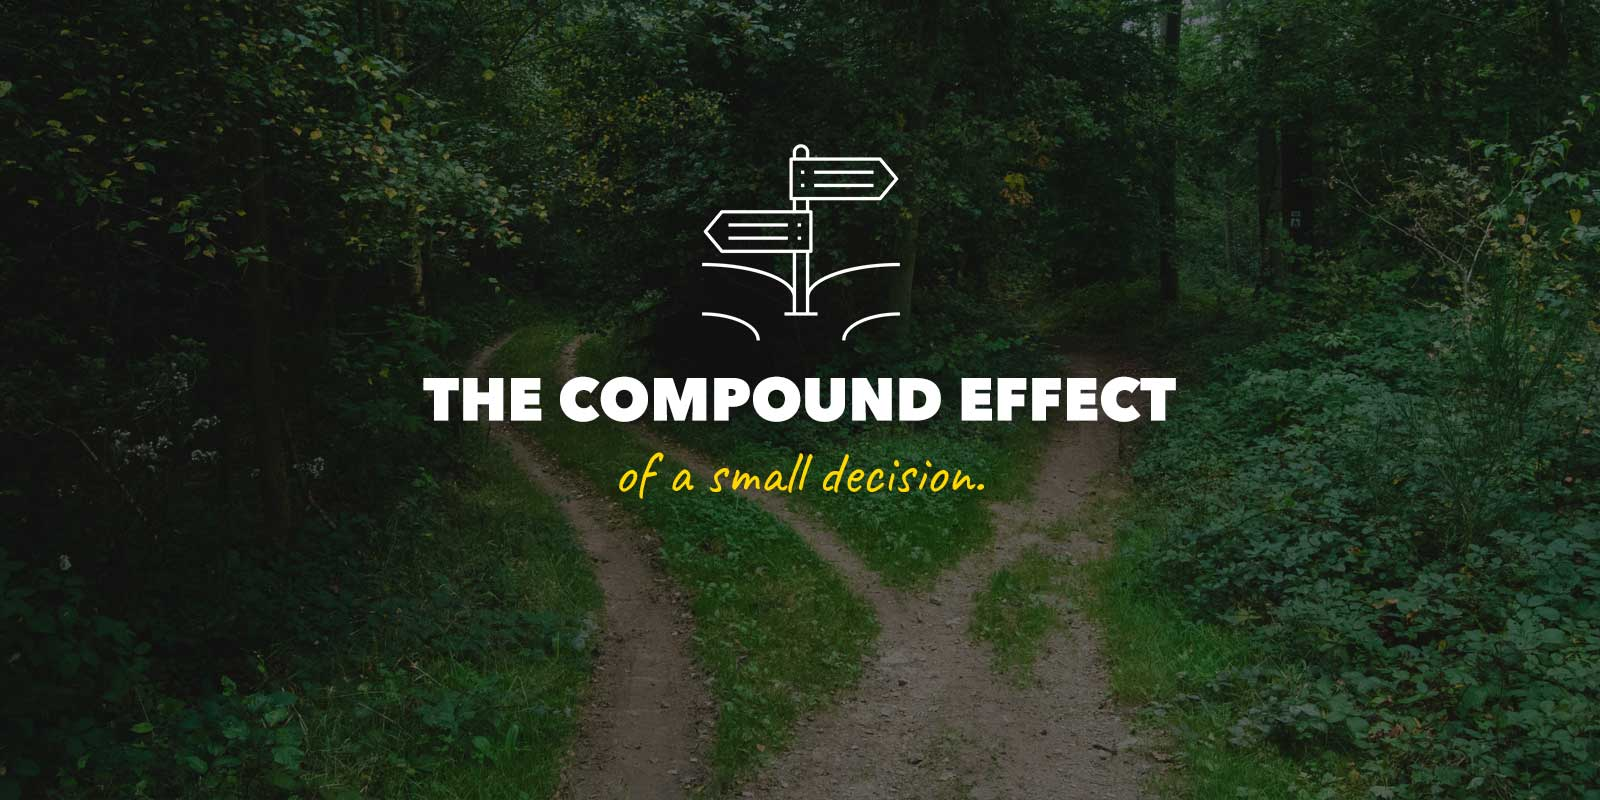 The Compound Effect of Small Decisions. Decision icon by Becris from the Noun Project